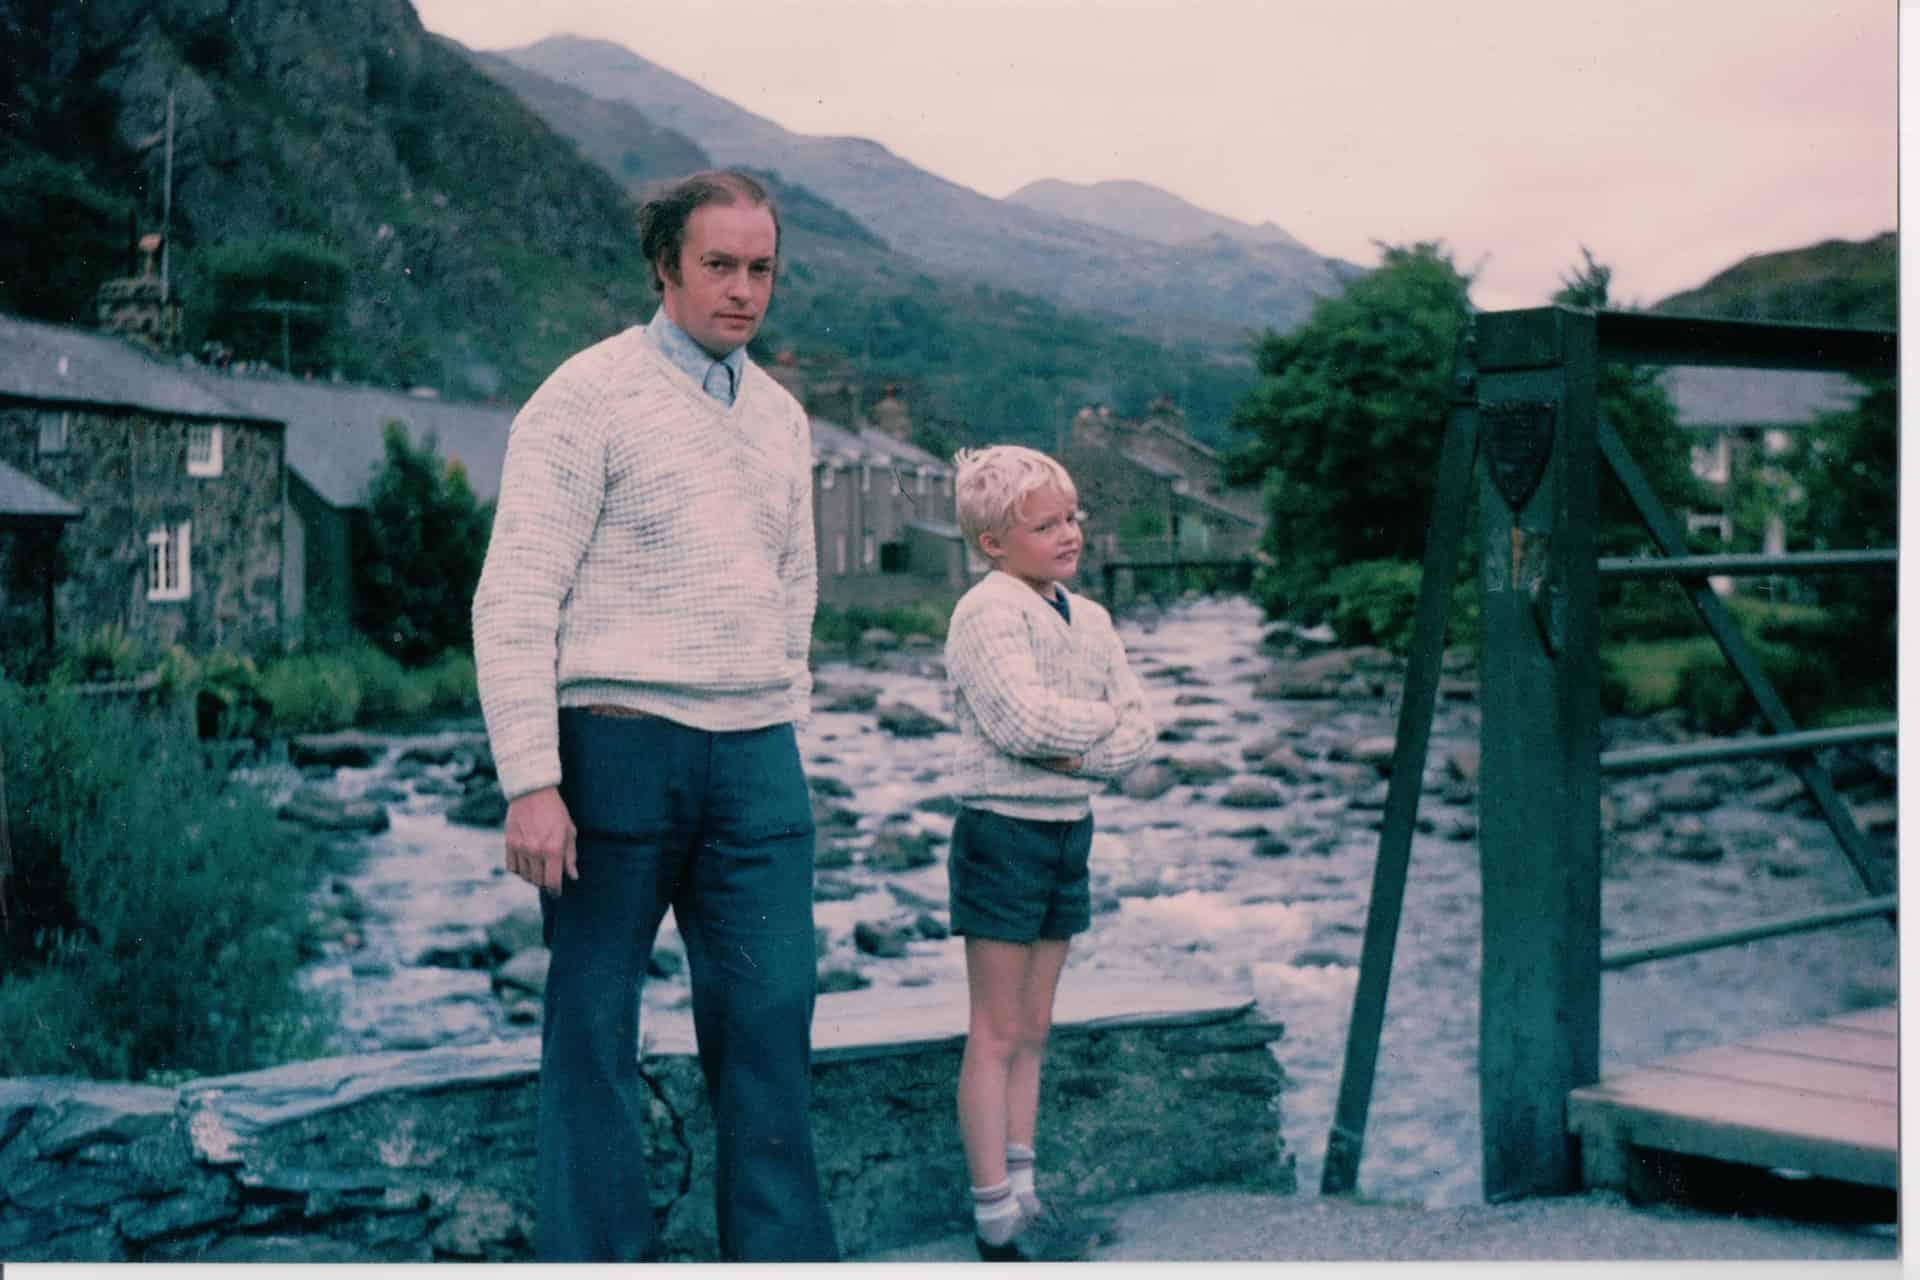 Conrad and Peter, probably at Betws-y-Coed, early 1970s.